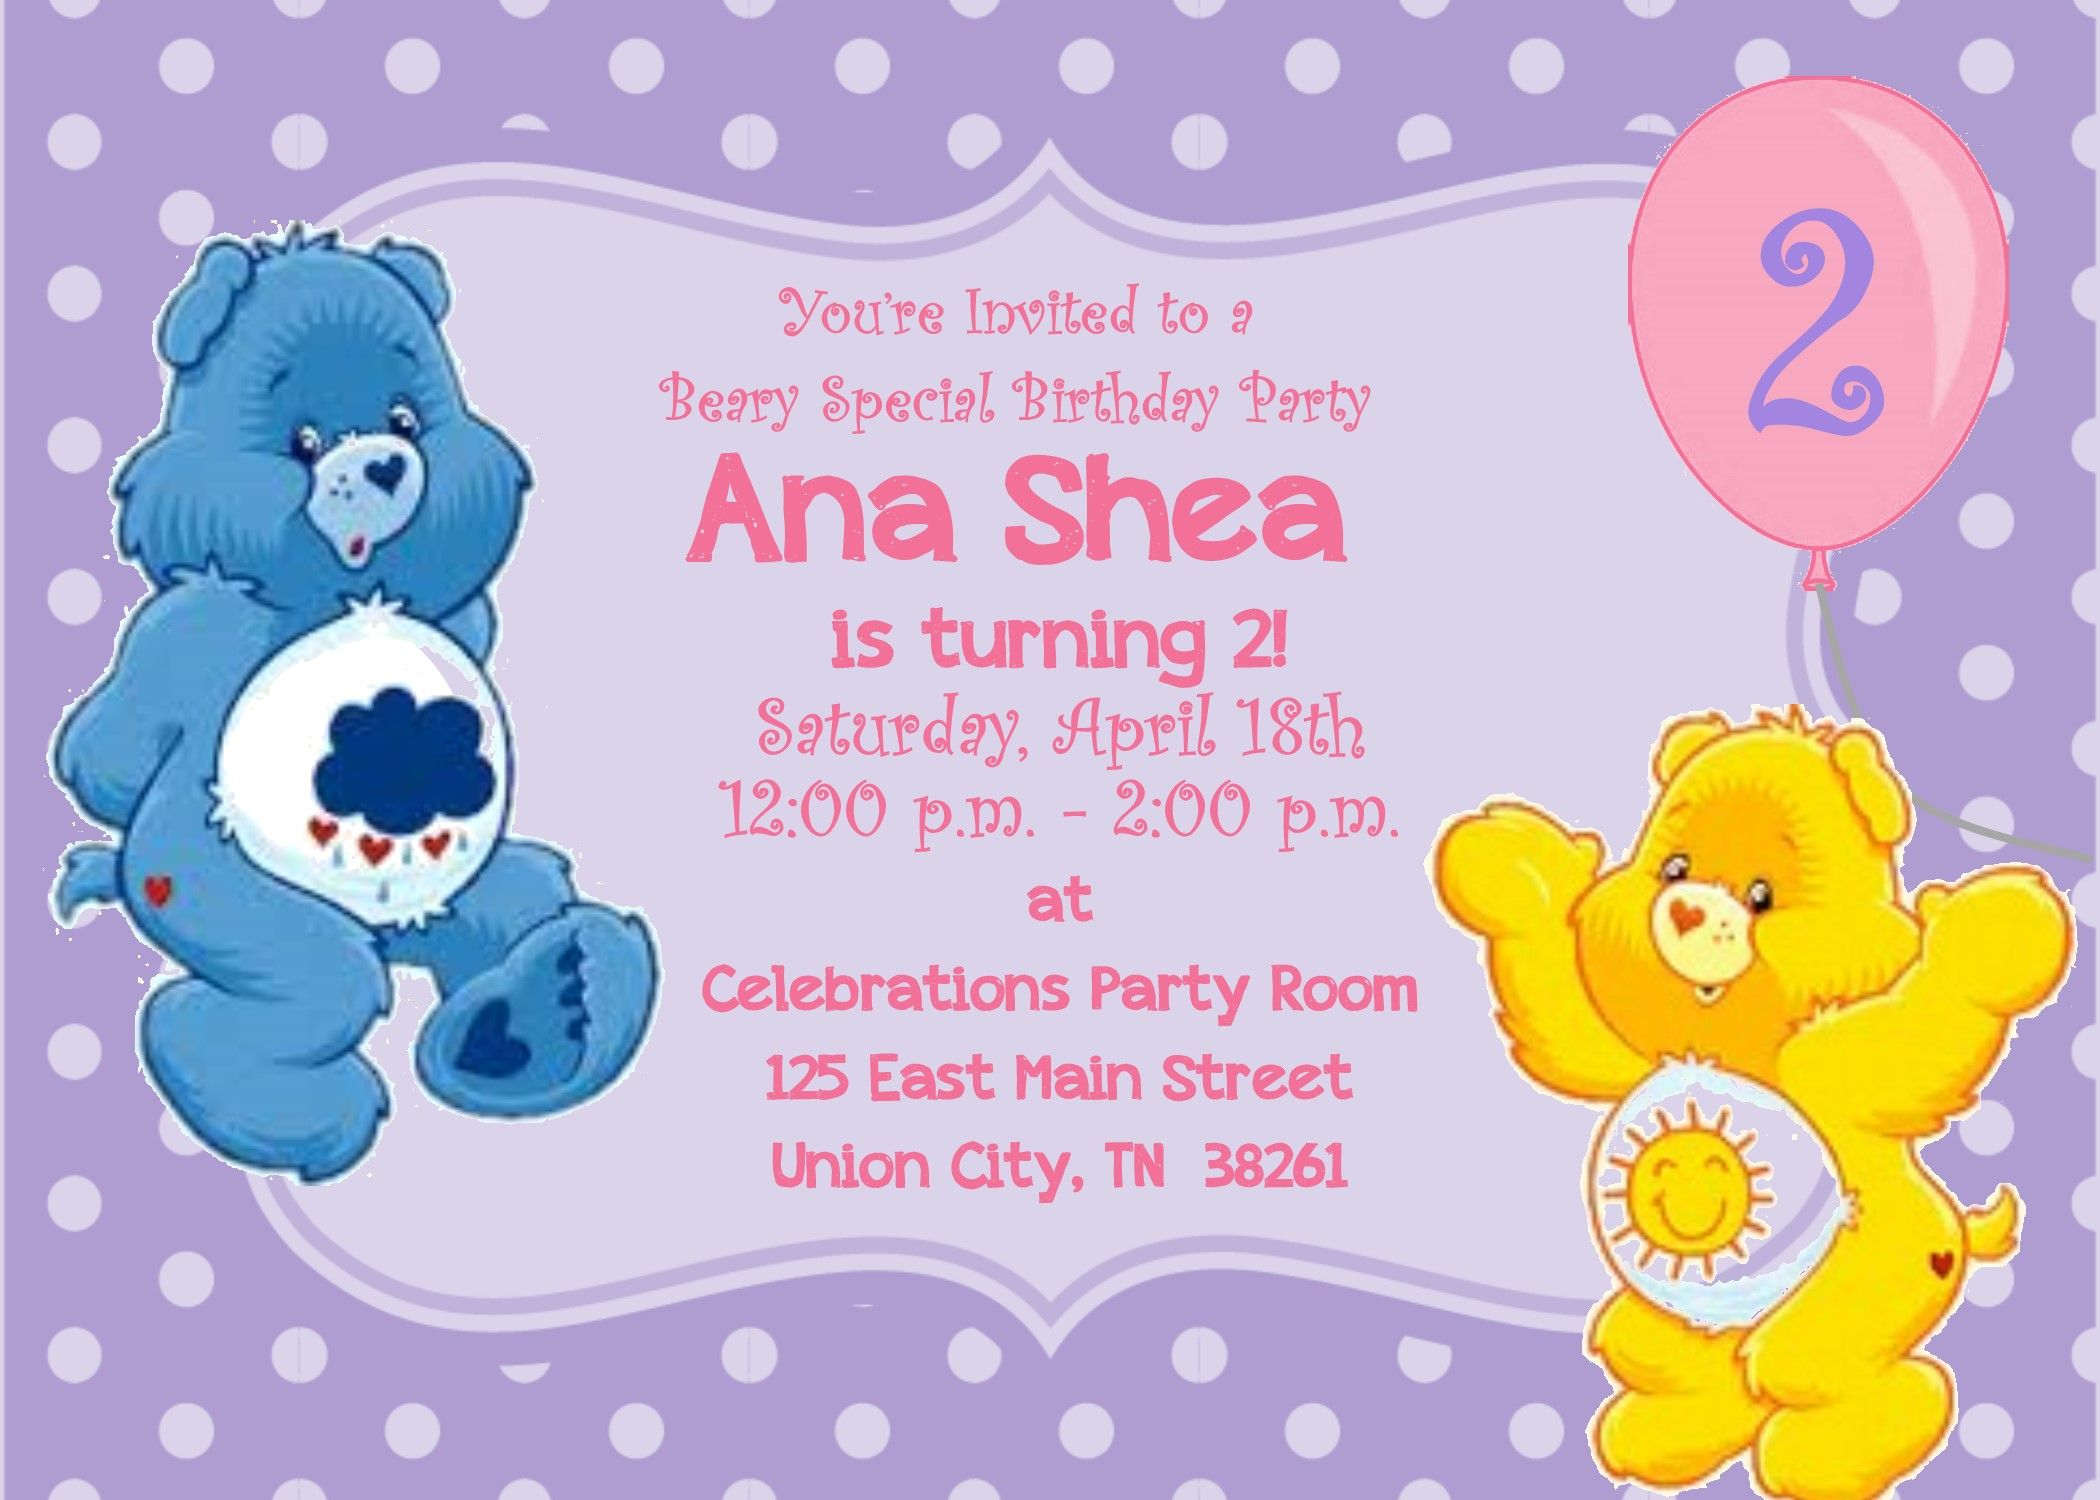 Care bears invitation custom made for you by thepaperpennytfire care bears invitation custom made for you by thepaperpennytfire monicamarmolfo Choice Image